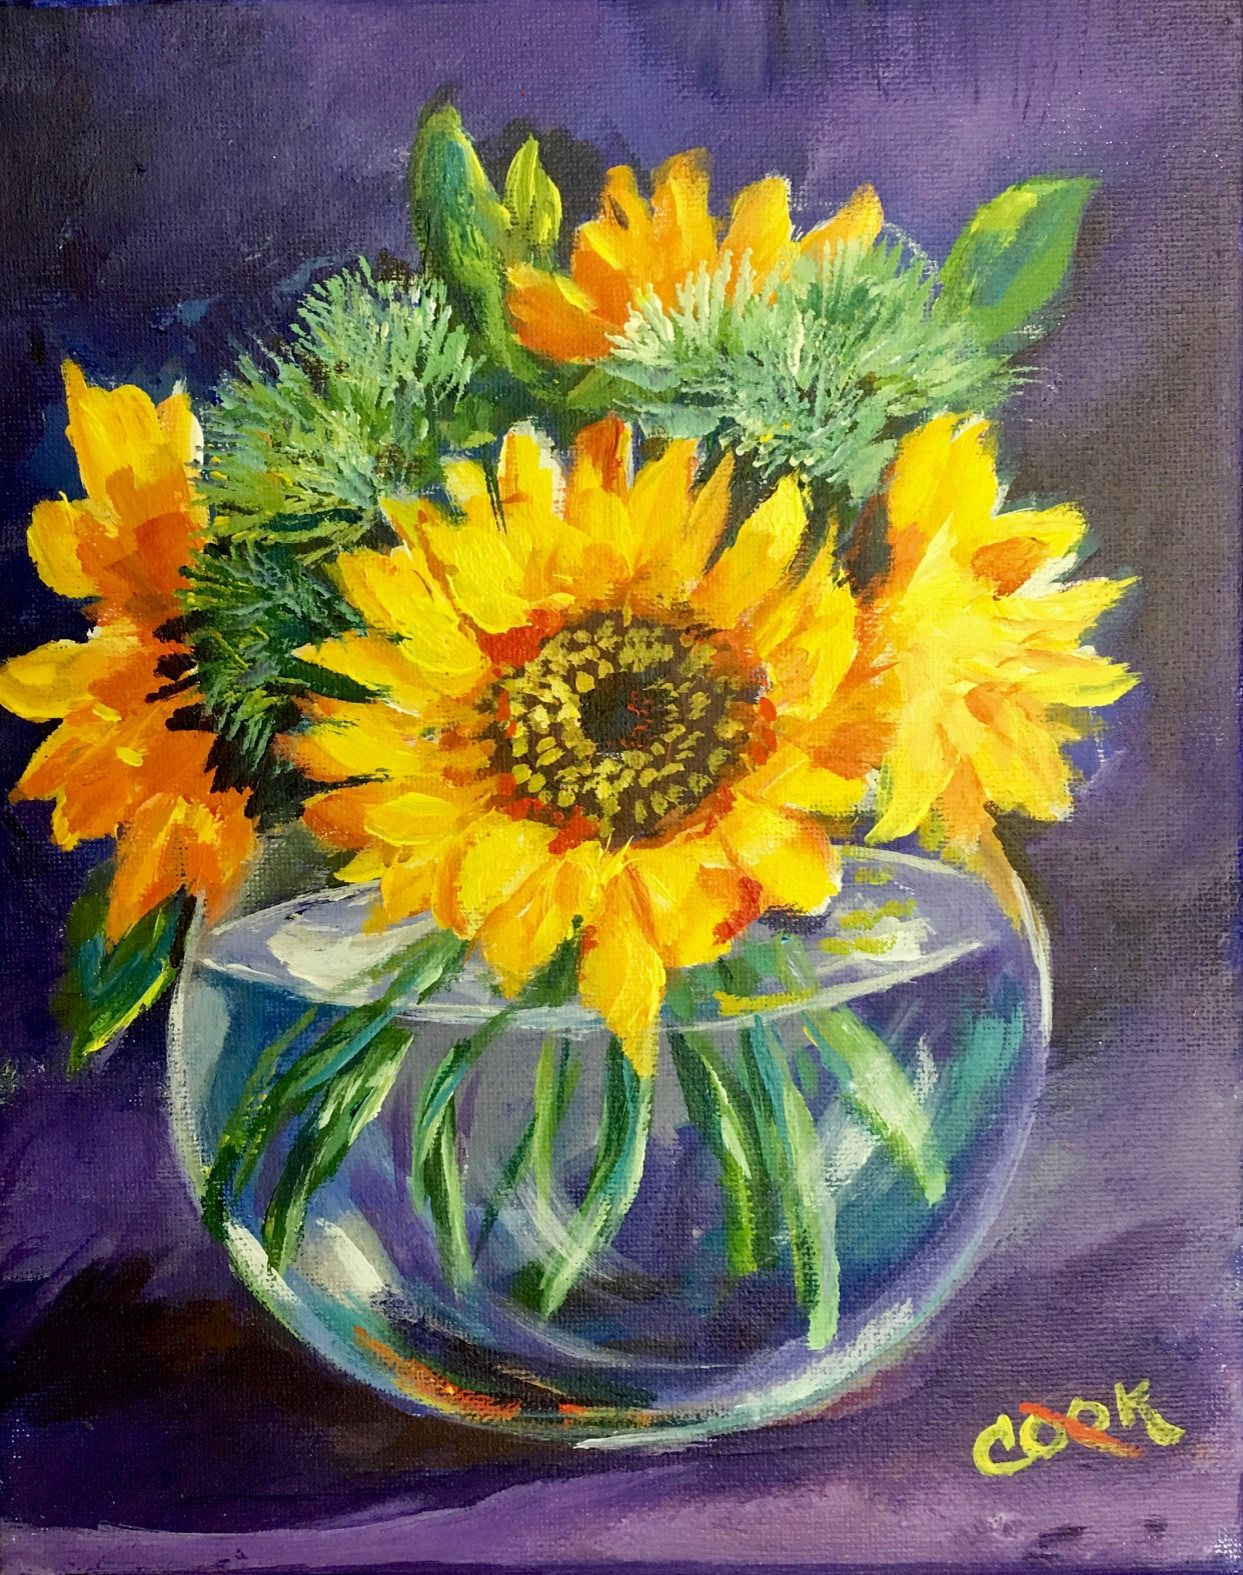 Sun flowers in a glass vase a youtube june 27 vidoe lesson sun flowers in a glass vase a youtube june 27 vidoe lesson reviewsmspy